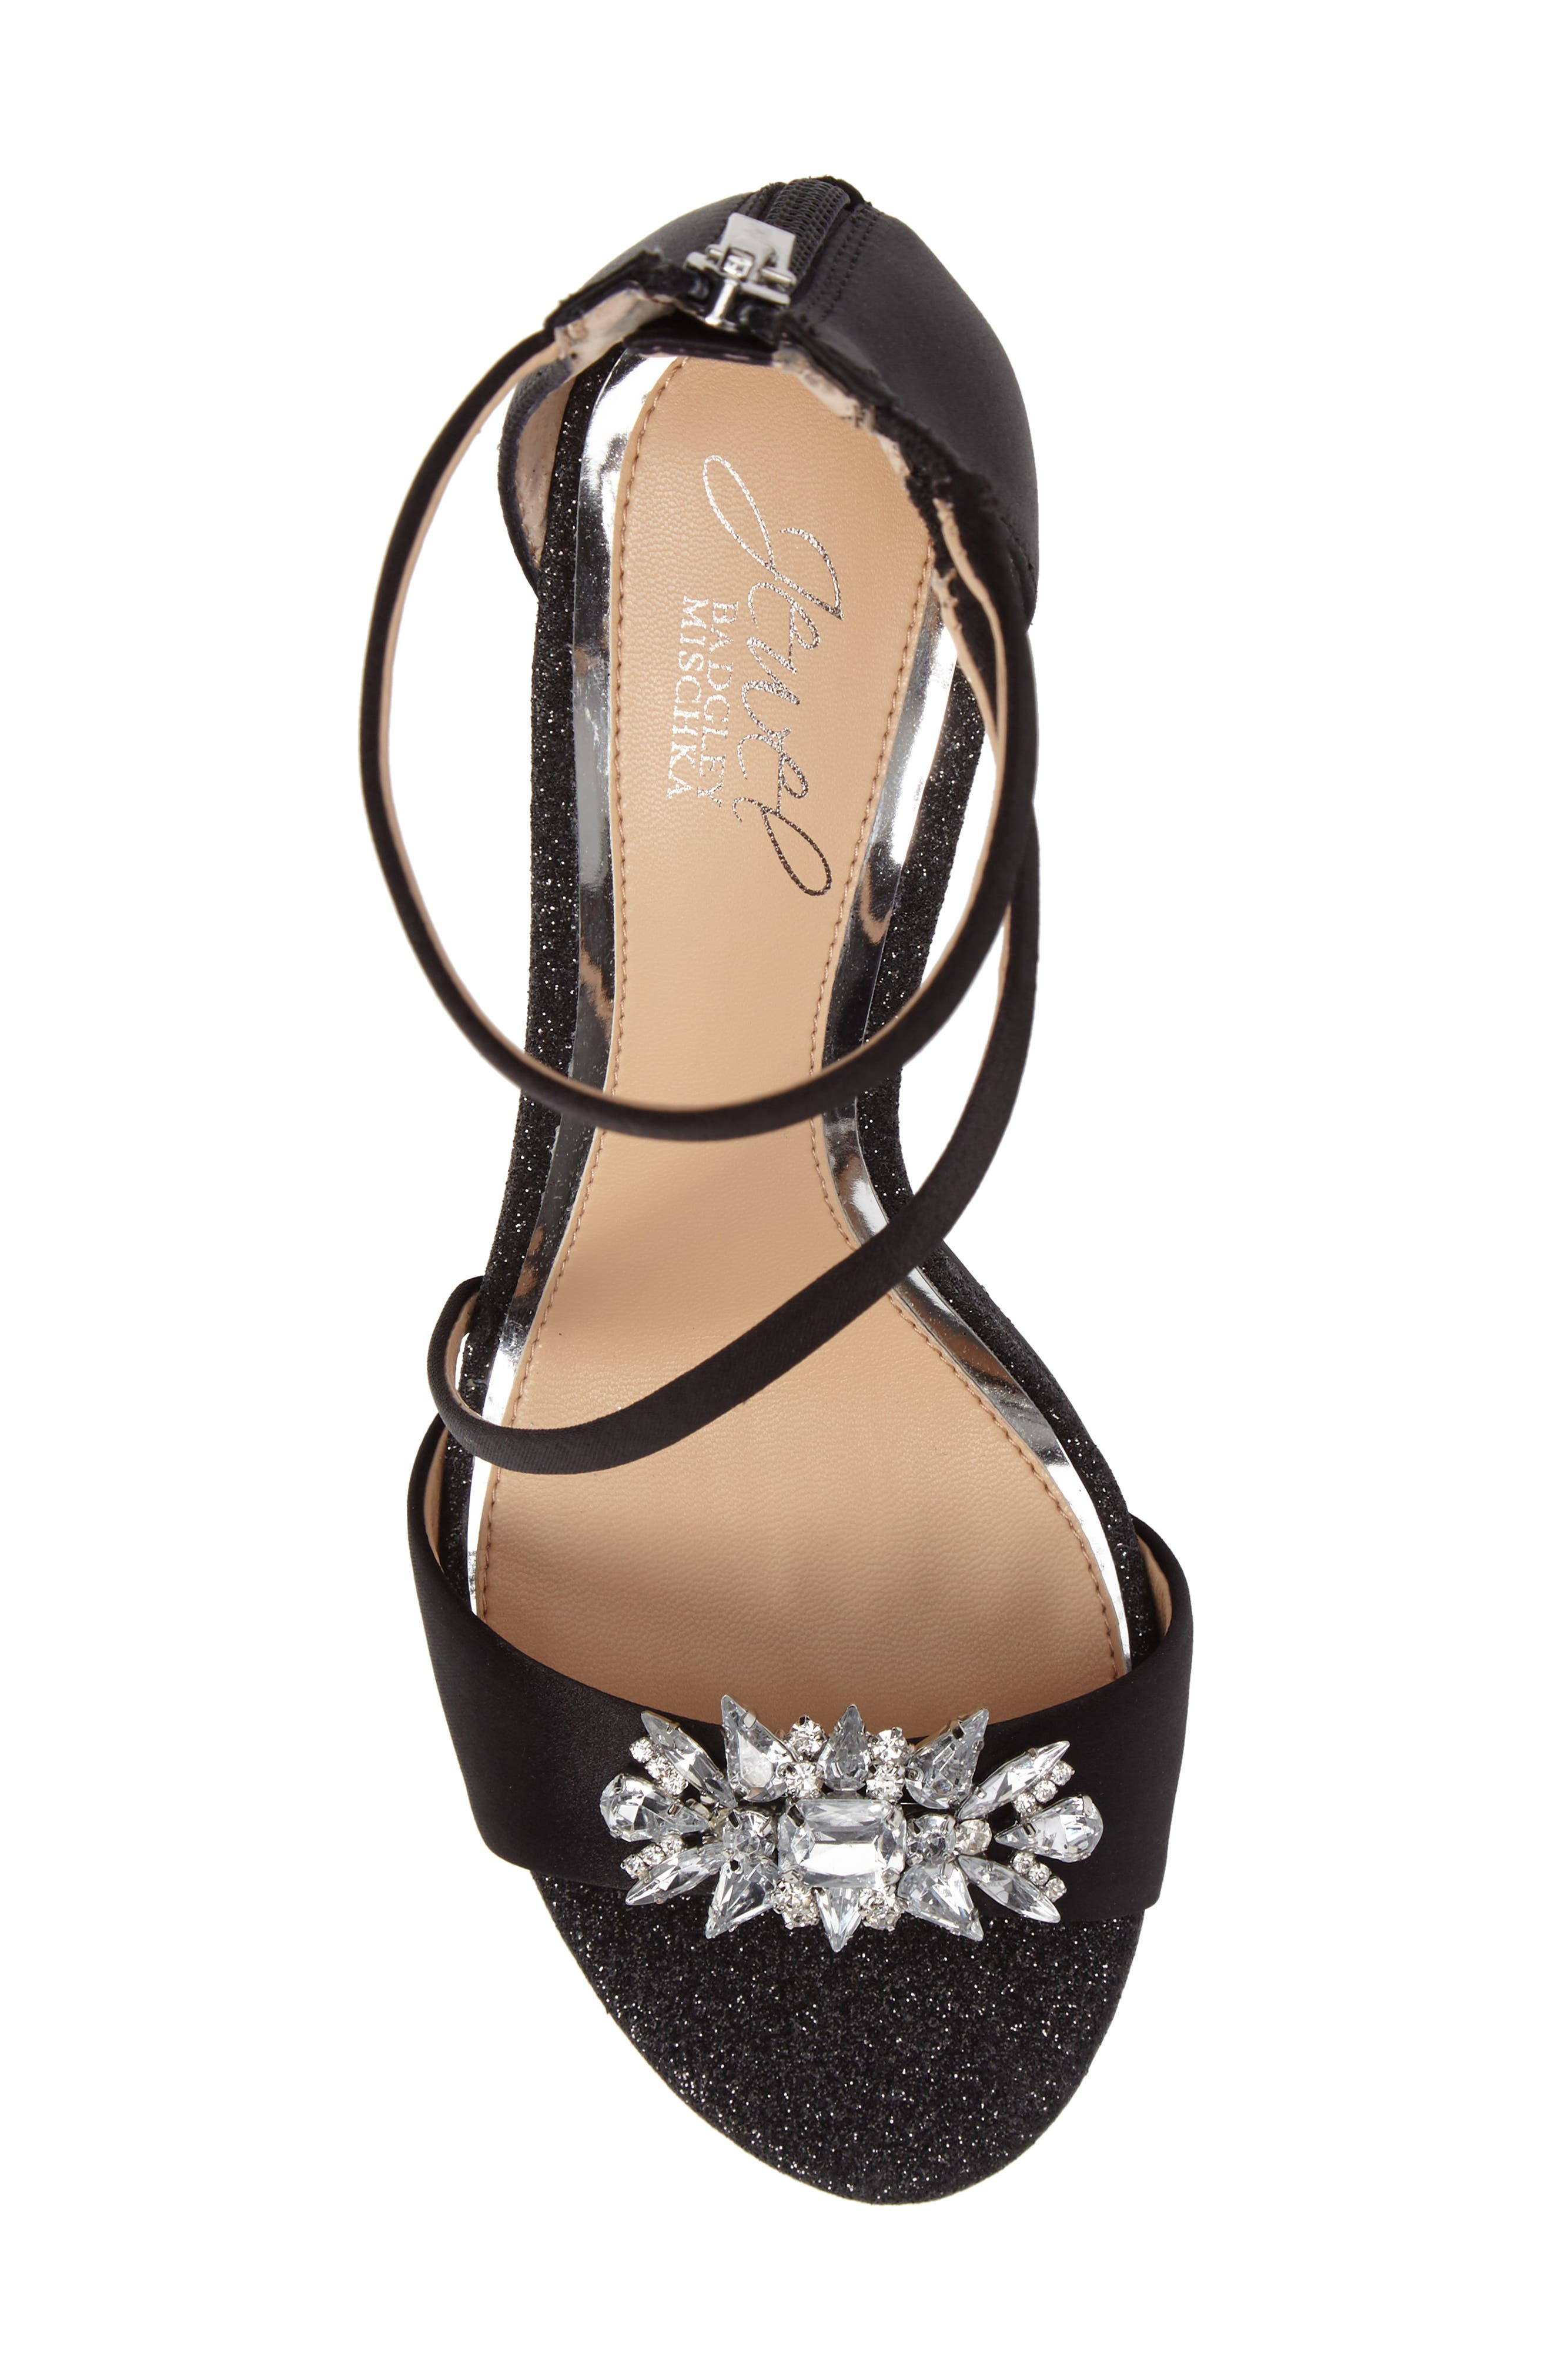 Leighton Embellished Strappy Sandal,                             Alternate thumbnail 5, color,                             015